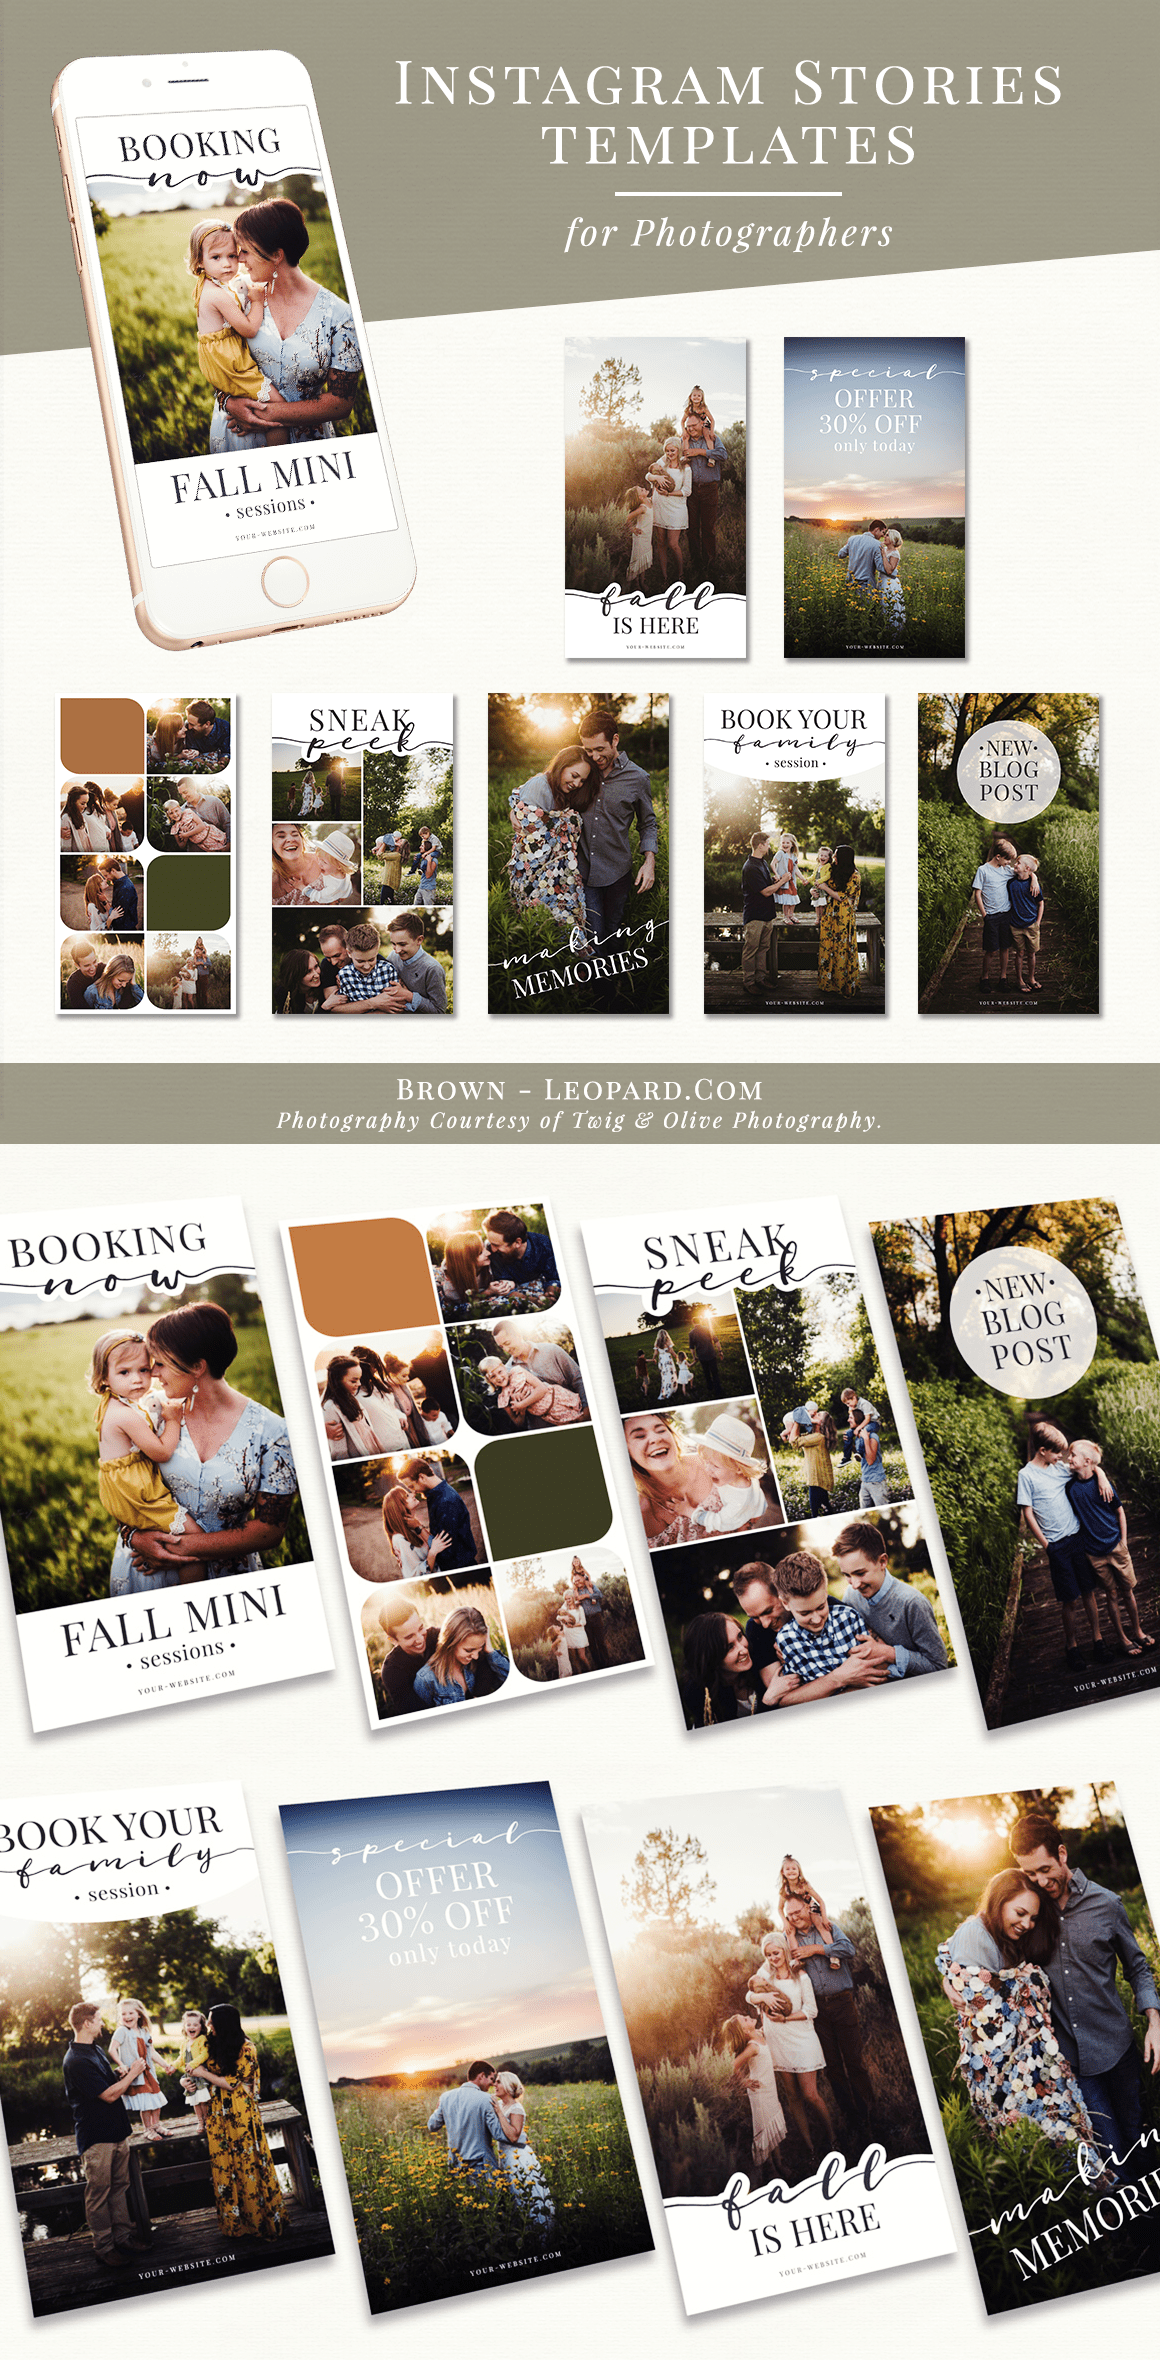 Instagram Stories Bundle for Photographers - fall theme. Great marketing tool to promote your photography business on social media, boost your service, offers & special sales.Customizable layered psd files for Adobe Photoshop and Photoshop Elements - super easy to use. Digital design templates for creative photographers from Brown Leopard.